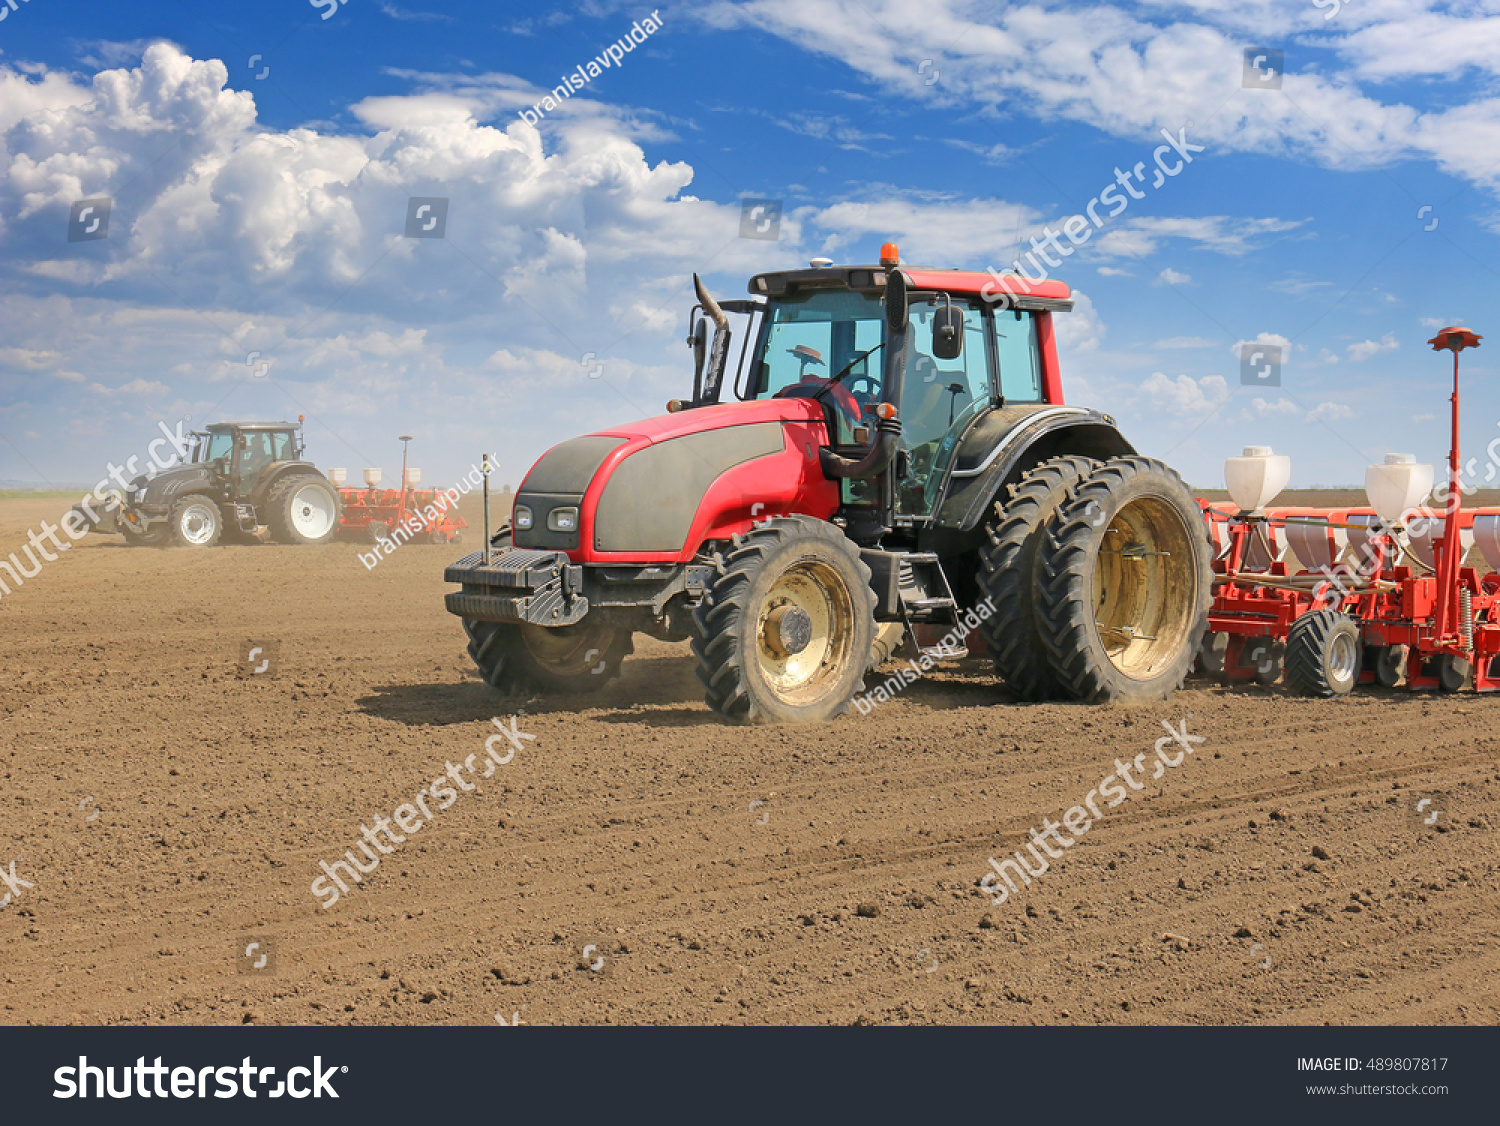 Tractor In Field Planting : Tractor and seeder planting crops on a field stock photo